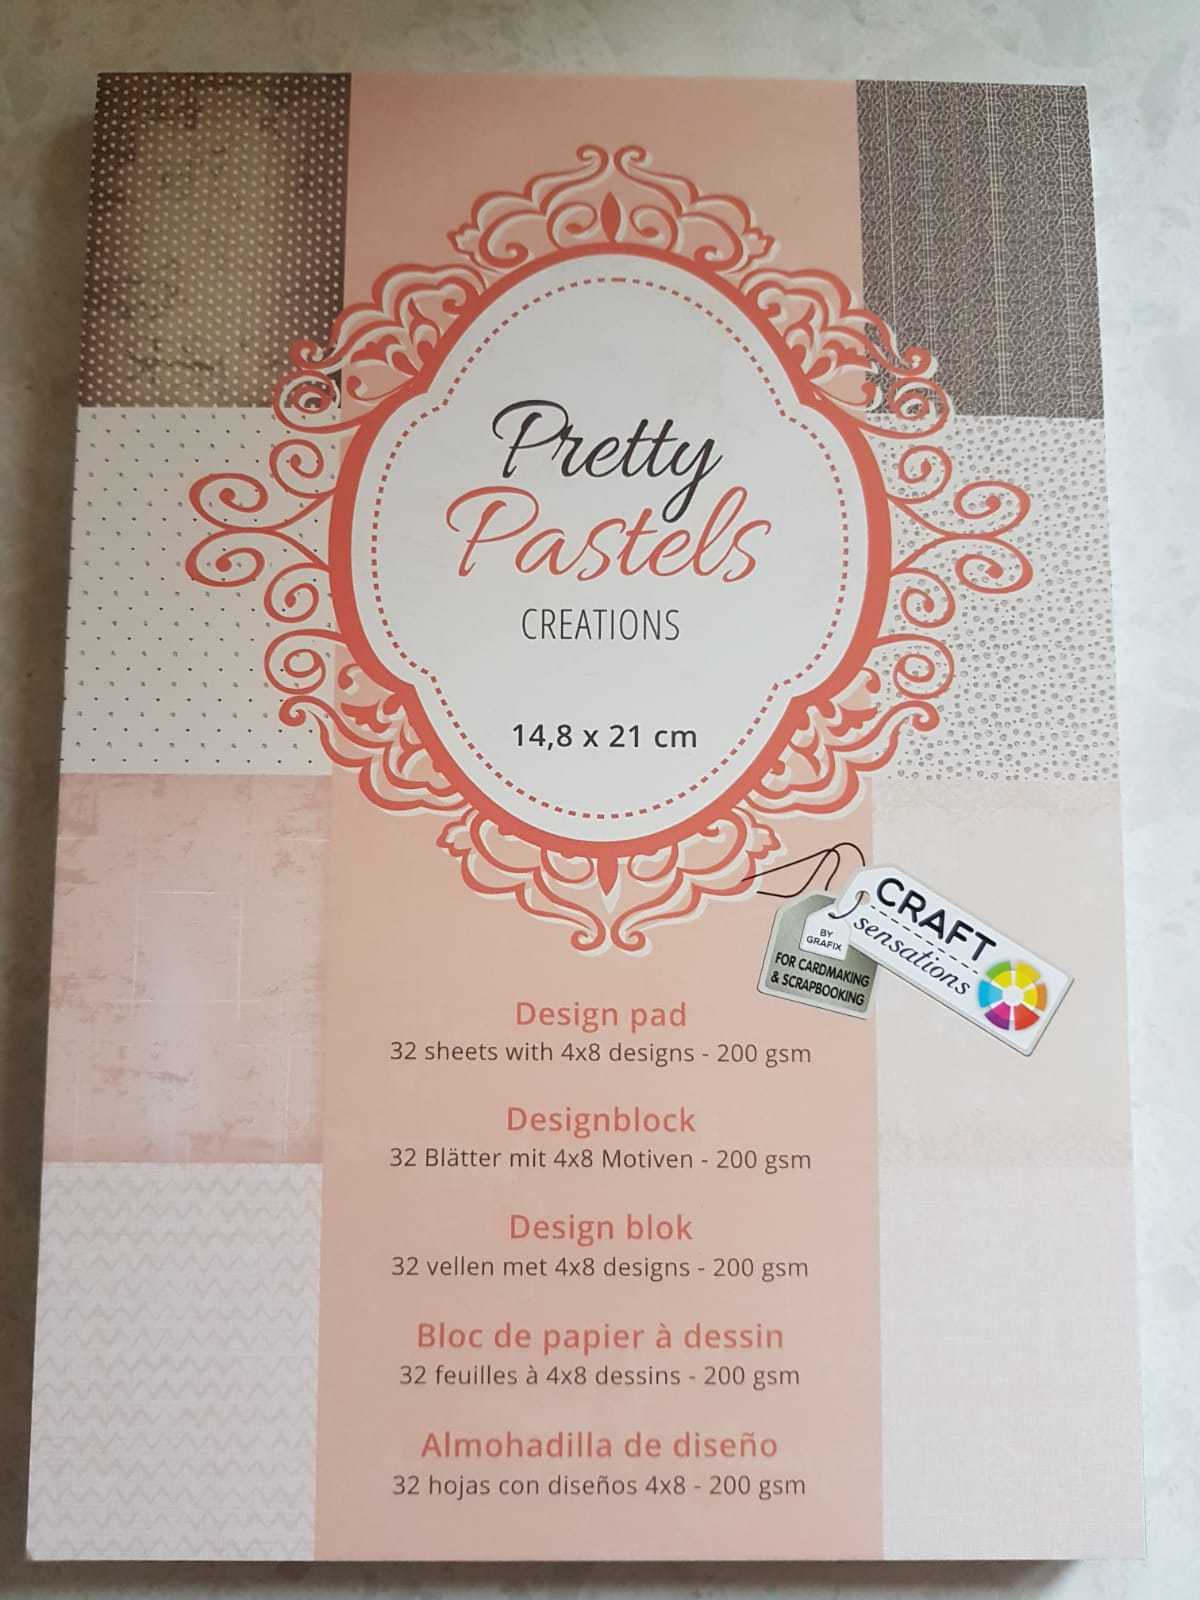 CRAFT PAD PURPLE PARADISE Creations 14.8 x 21cm 32 SHEETS with 4x8DESIGNS 200gsm